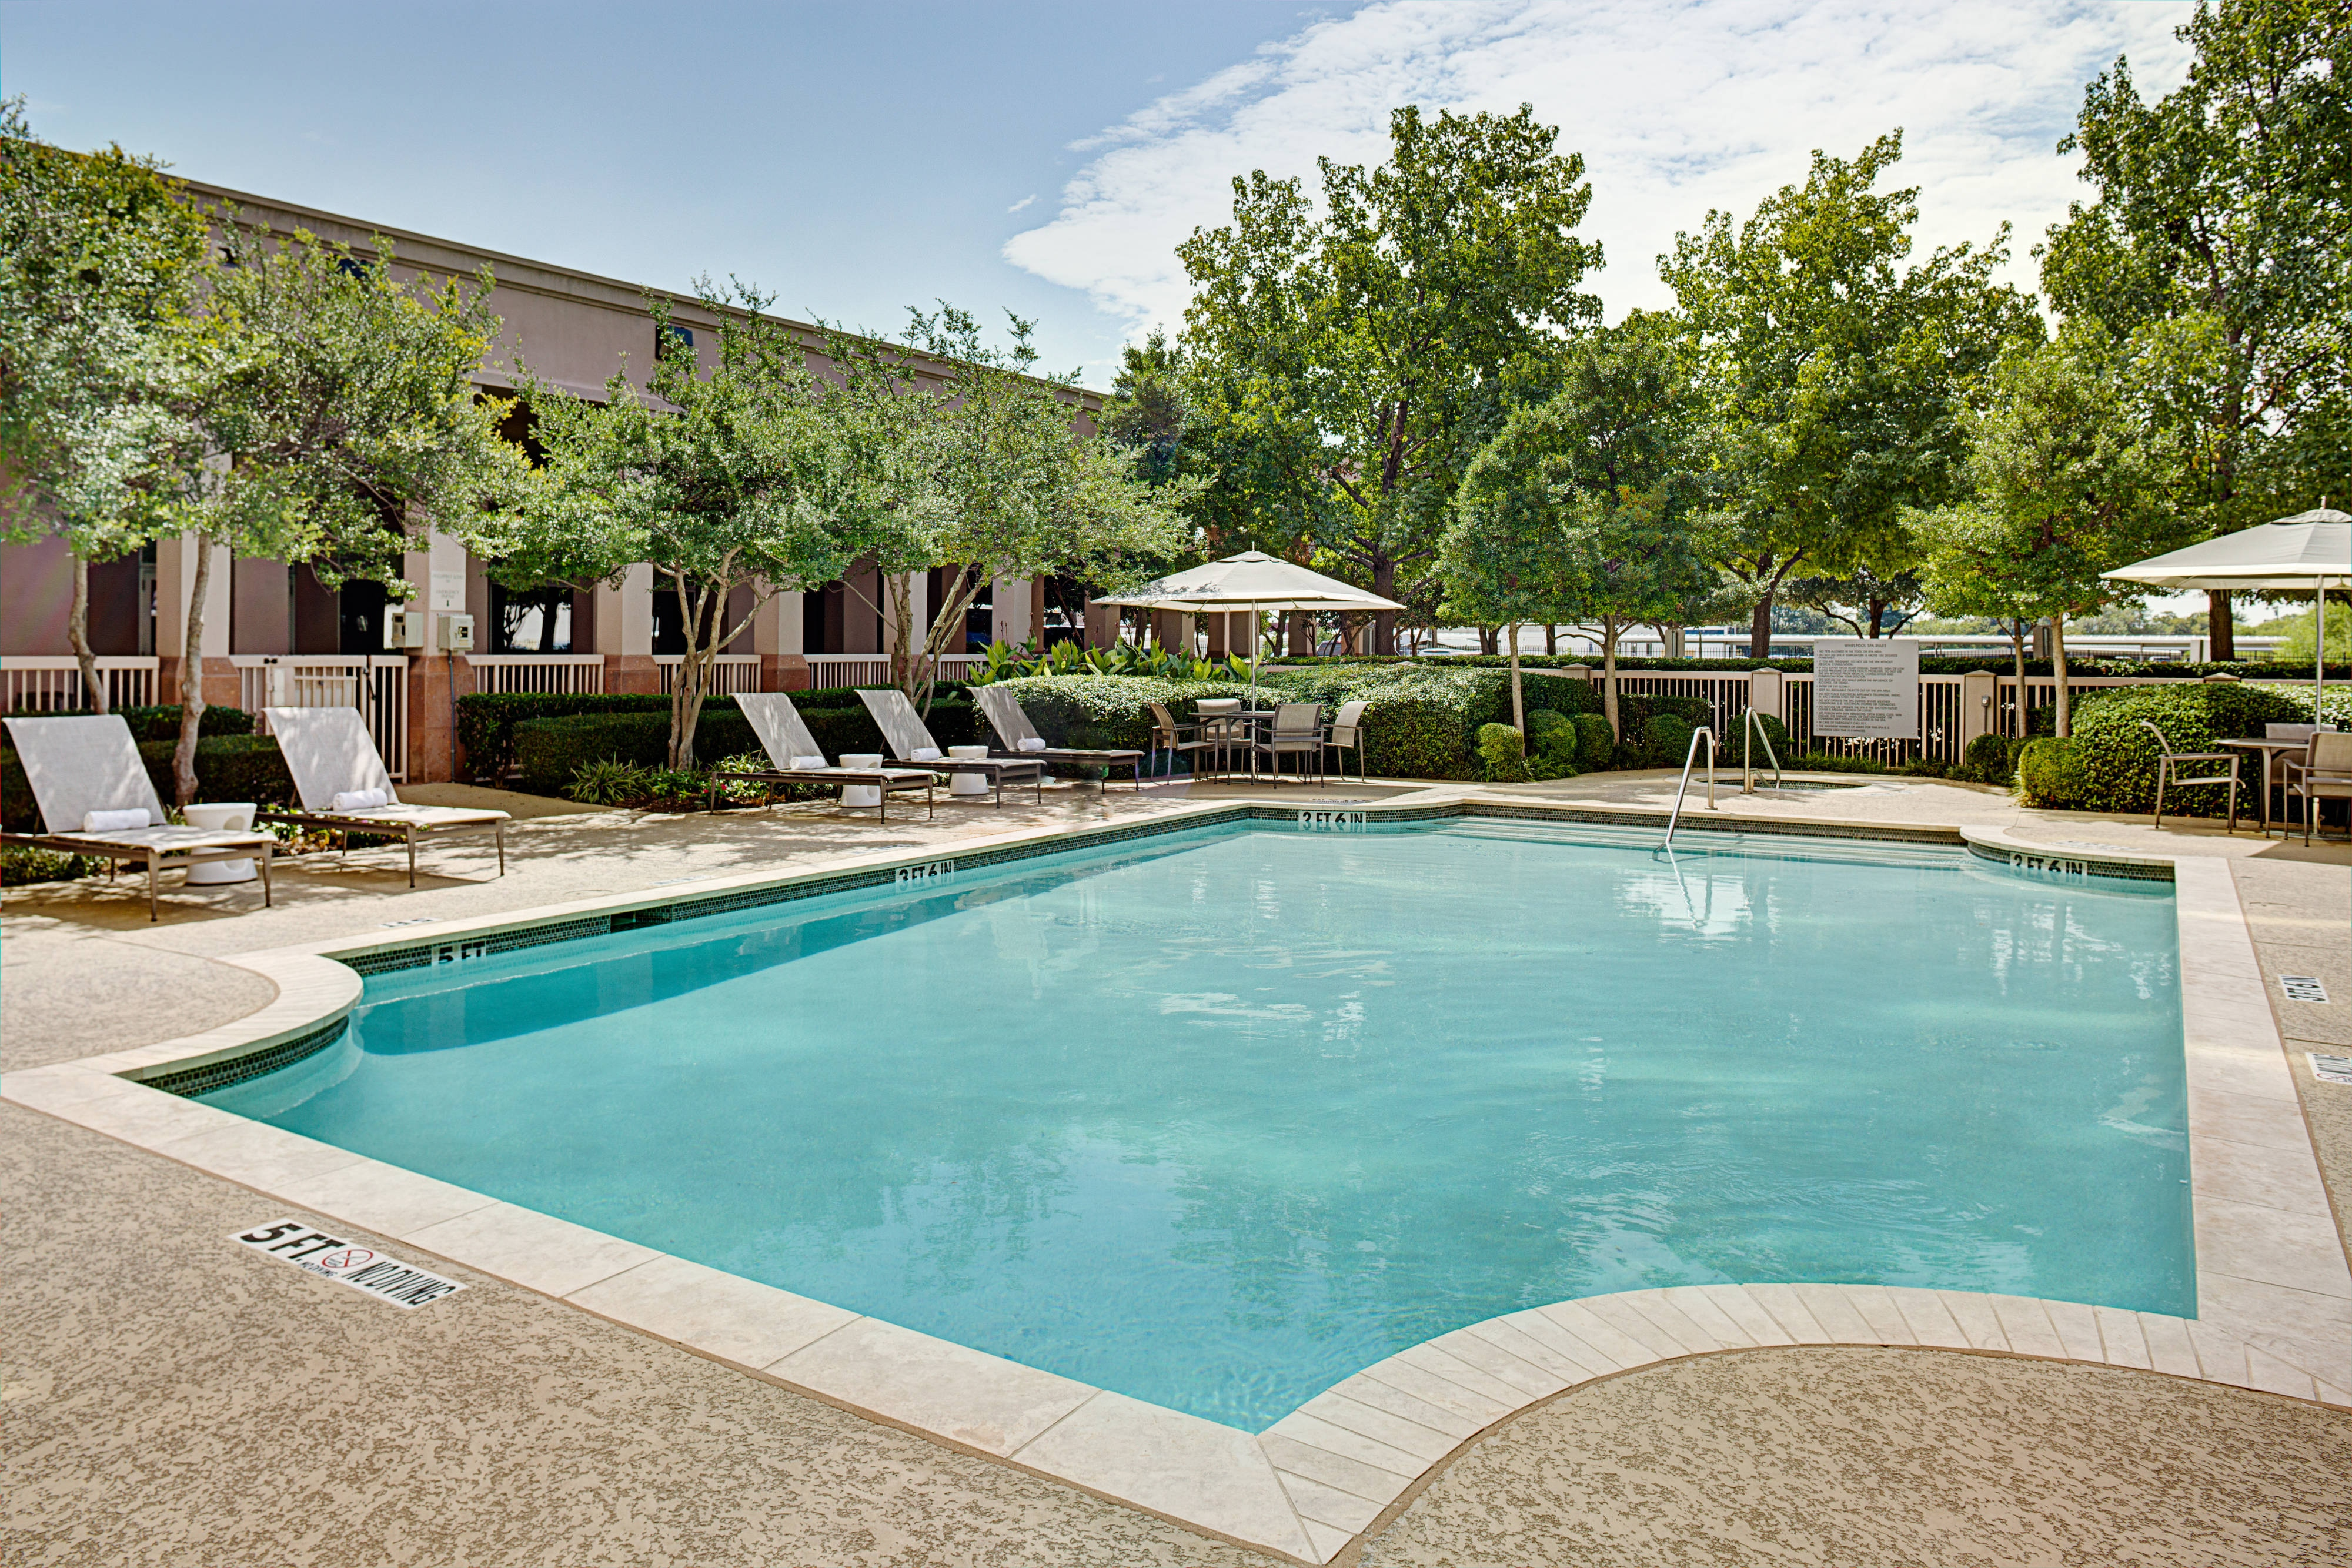 dallas hotel with pool